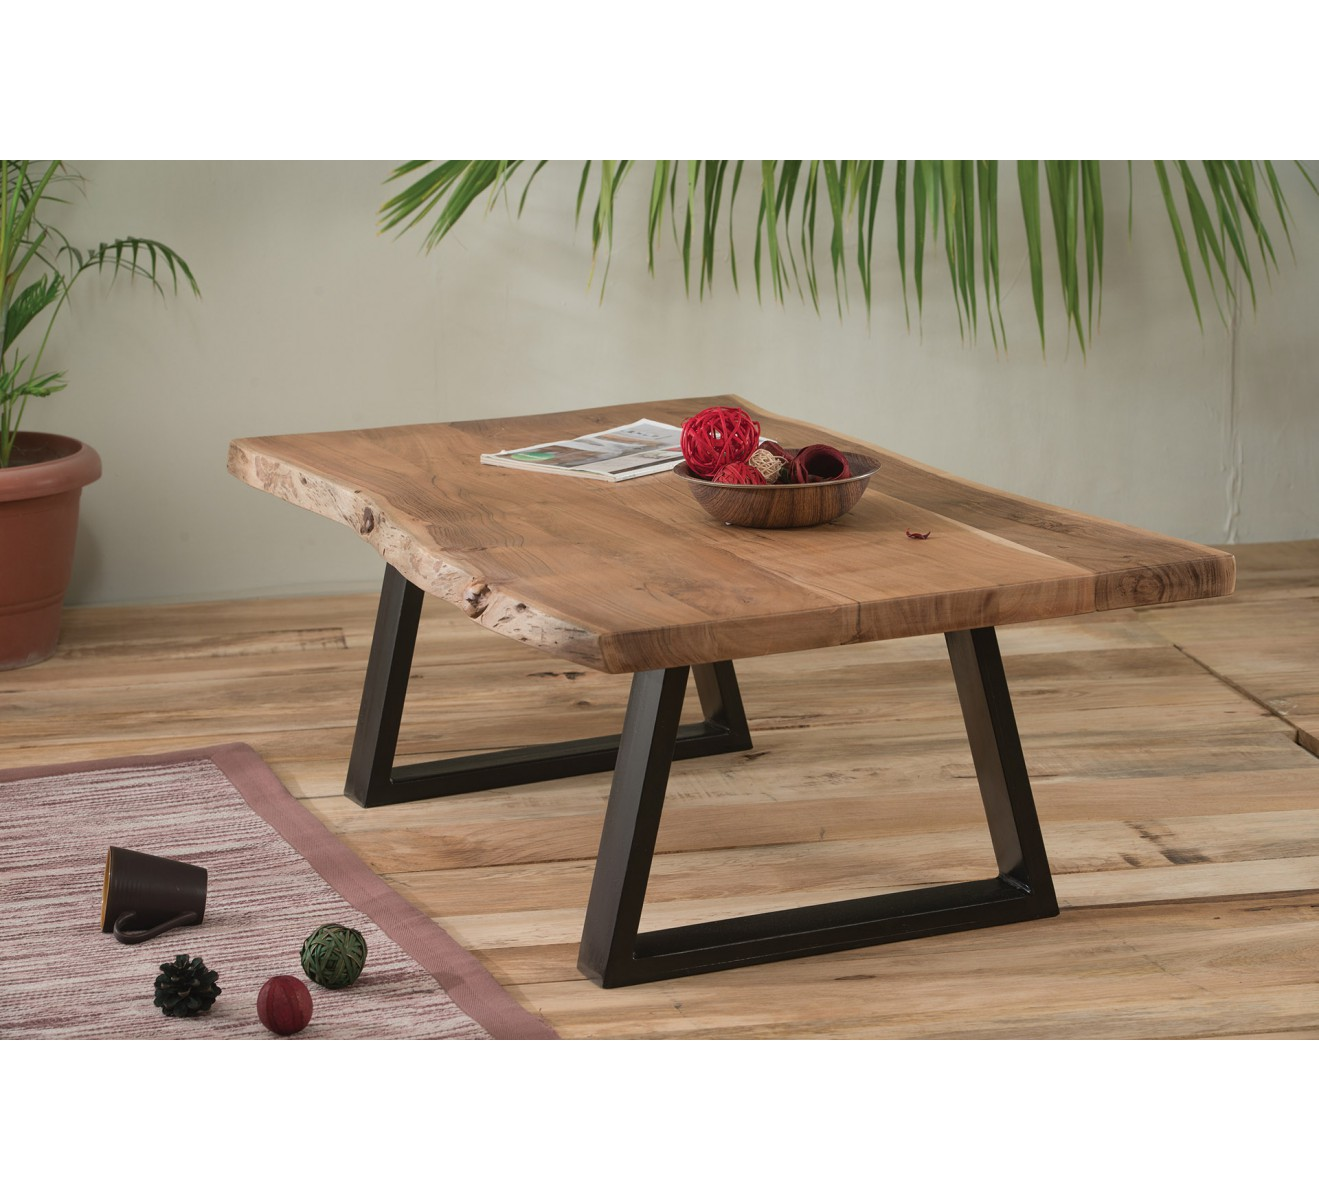 Table basse naturel m tal et bois 39 zen 39 for Zen et nature meuble